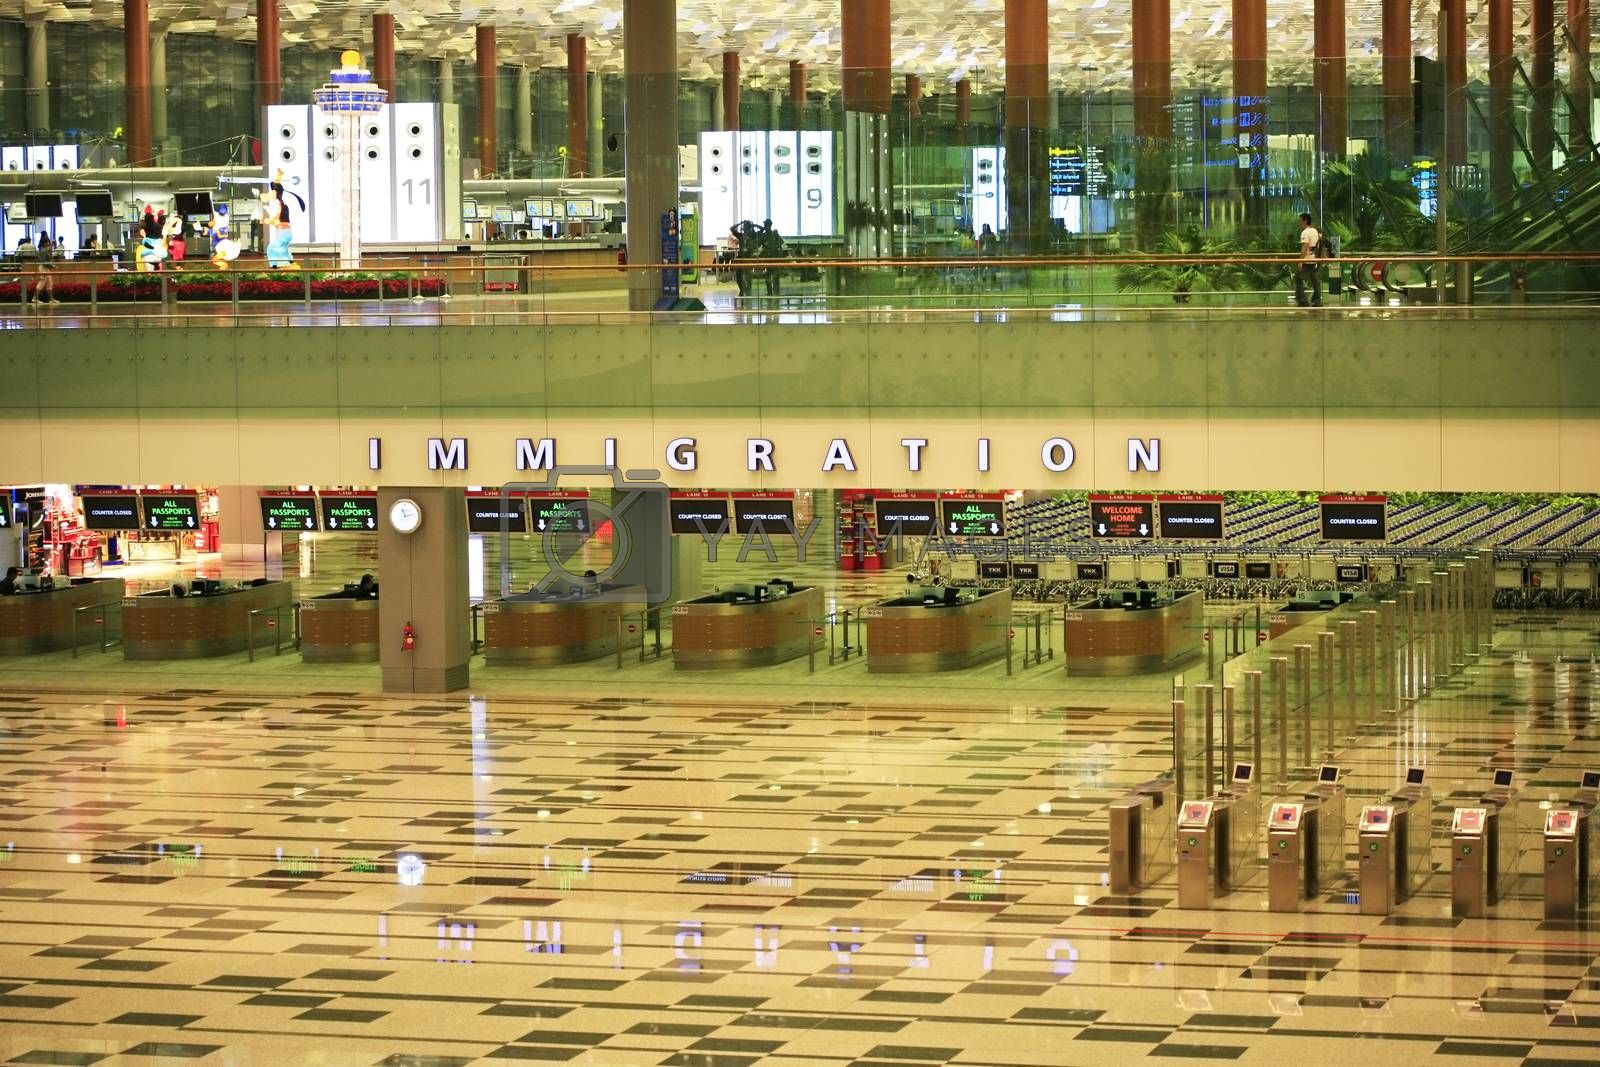 Singapore, Singapore - November 12, 2008: Inside view of Changi International Airport. Hall of immigration. Changi is a major aviation hub in Asia, serves more than 100 airlines operating 6,100 weekly flights connecting Singapore to over 220 cities.